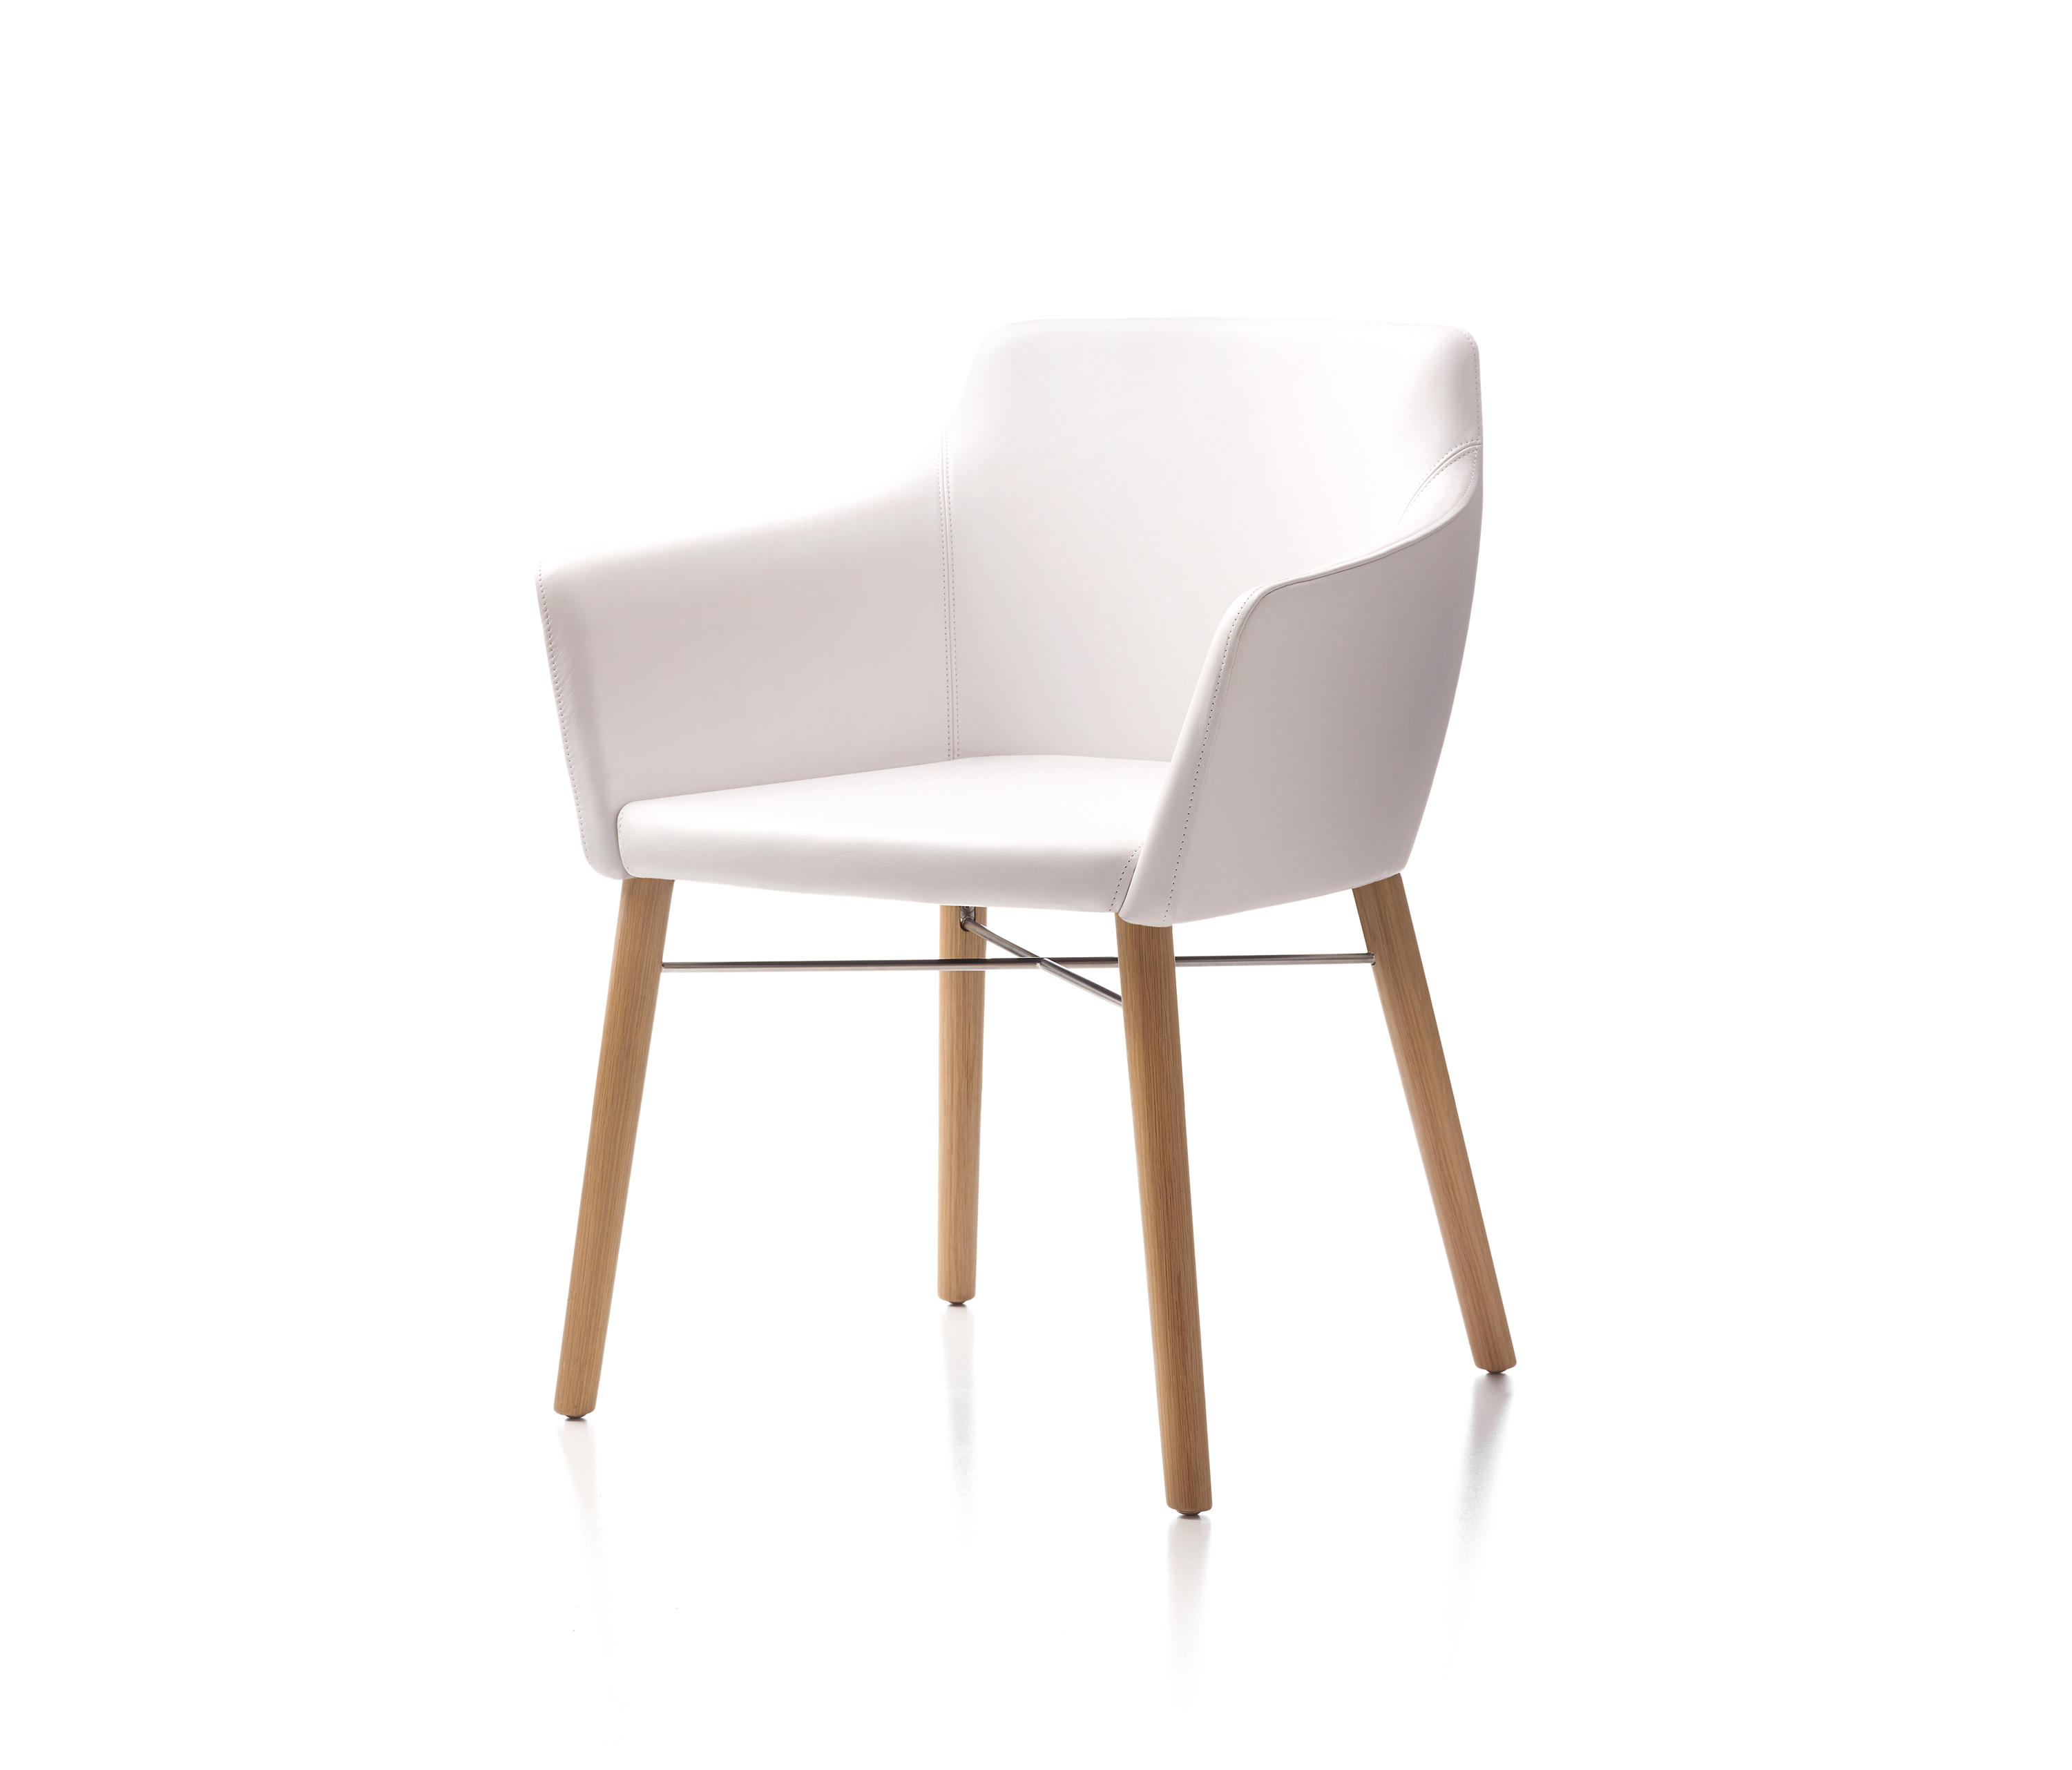 Stylex Office Chairs ... | CHAIR - Visitors chairs / Side chairs from Stylex | Architonic